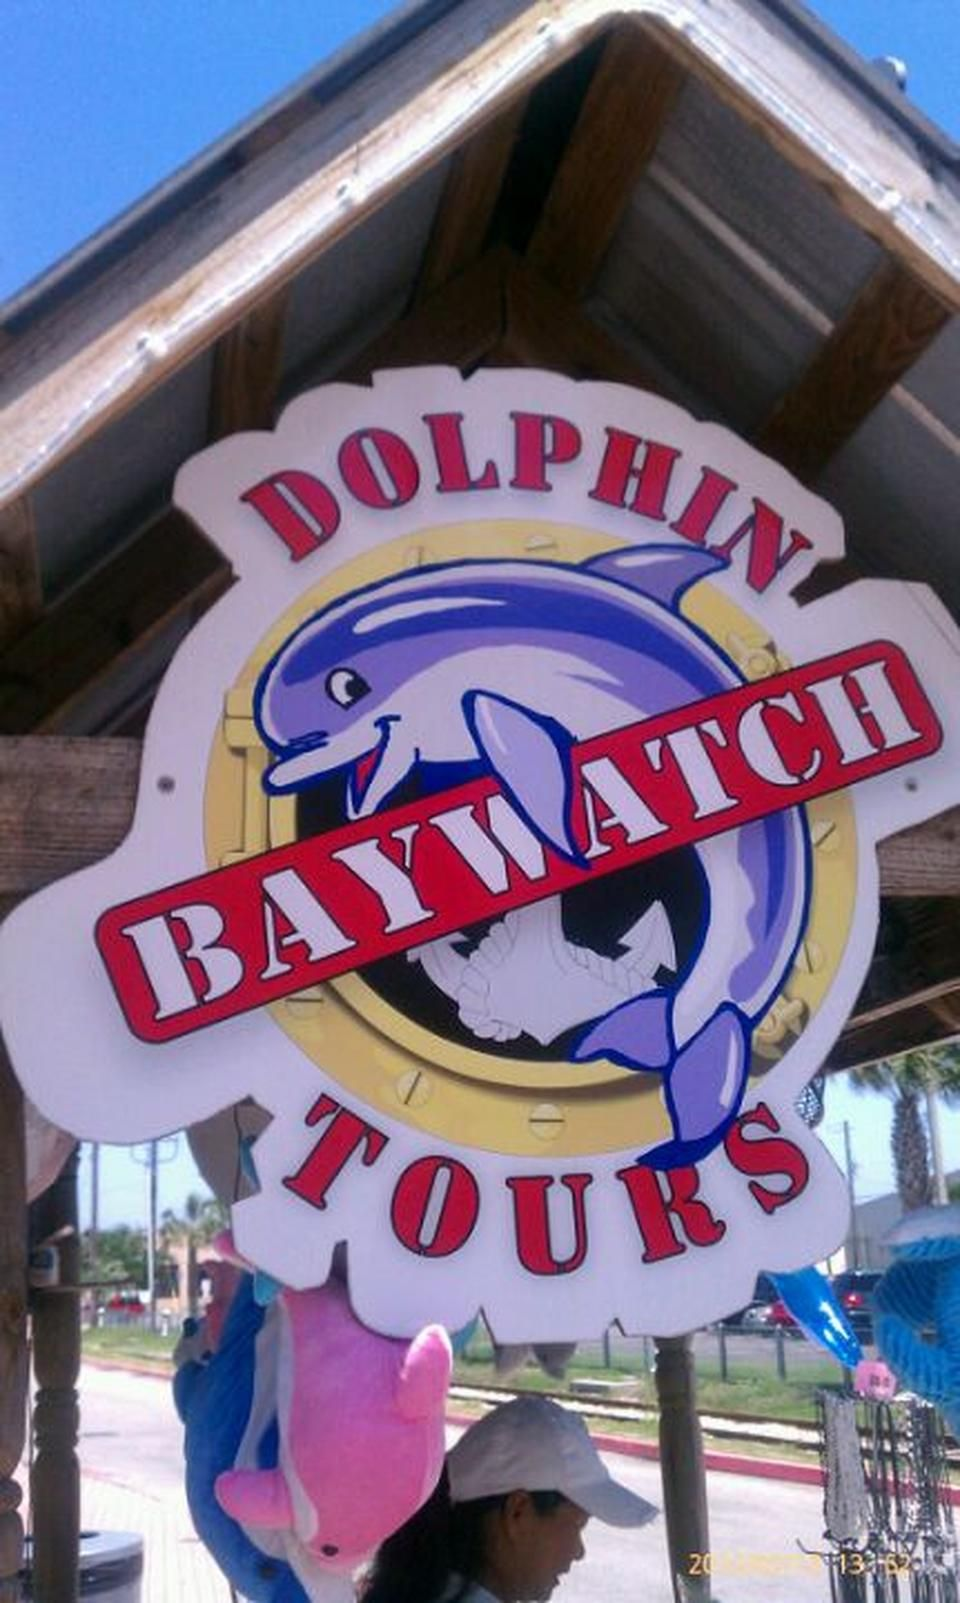 Baywatch Dolphin Tours Galveston Tx Texas Pinterest